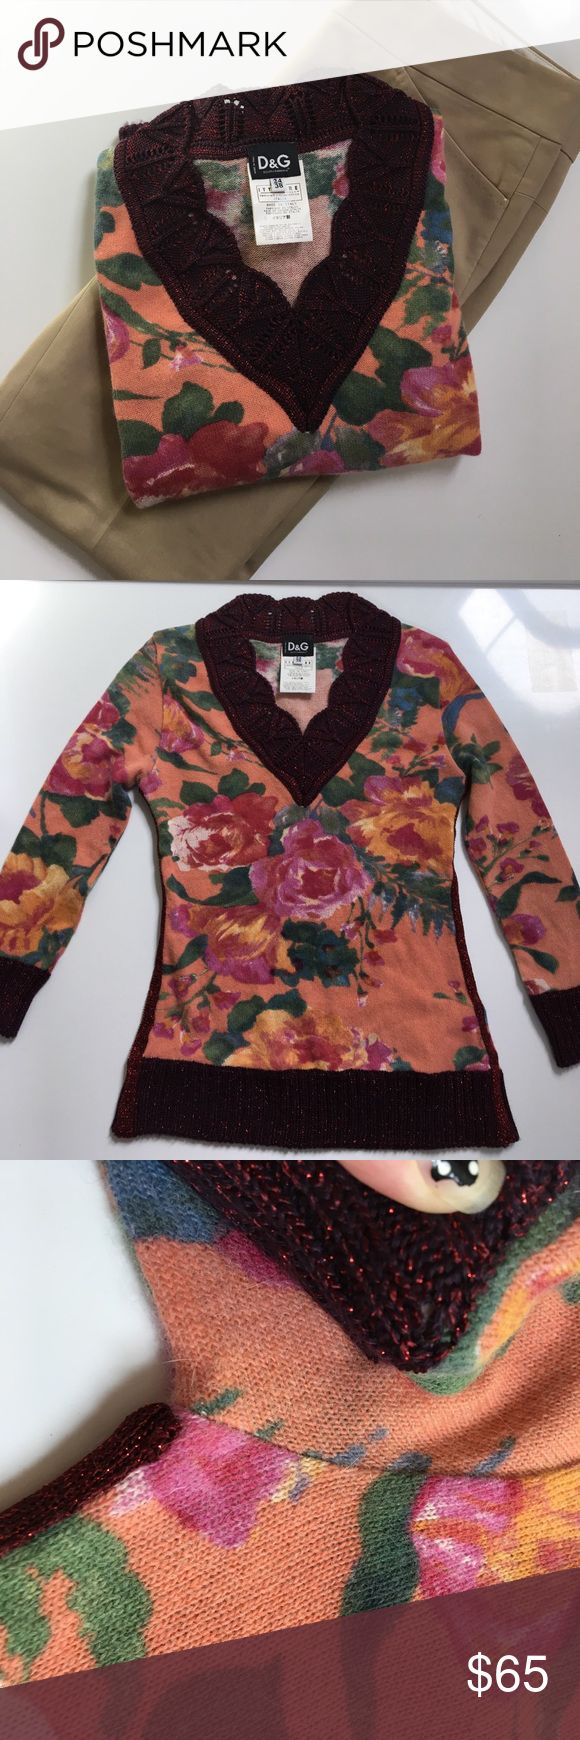 """{ Dolce & Gabbana } sweater shirt D & G sweater shirt in 34% nylon 34% angora 21% wool 7% acetate 4% other. 7/8 sleeves, v neck, knit trims, back has leather logo tag that's sewn on I had to fix by restitching on since one side was loose. Previously worn and has normal wear to it and a few spots that the knit is a little """"pulled"""" looks almost like a hole (see picture example please). Measures approx laying flat pit to pit 15""""mid shoulder down 21"""". Has light stretch only. So cute and comfy…"""